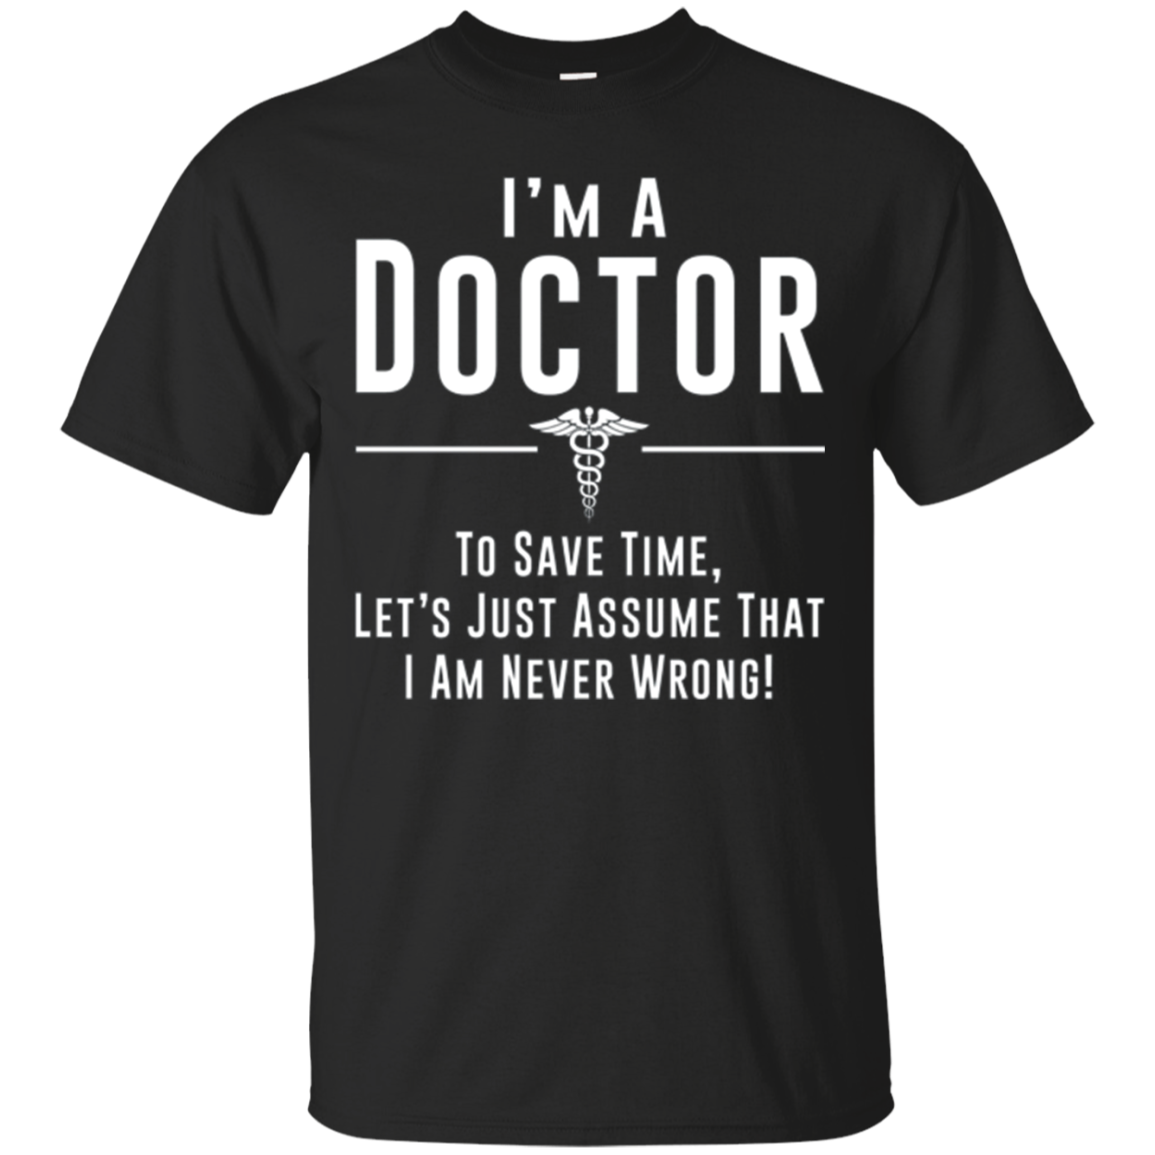 Keep calm I am a Doctor| Awesome Doctor T-shirt